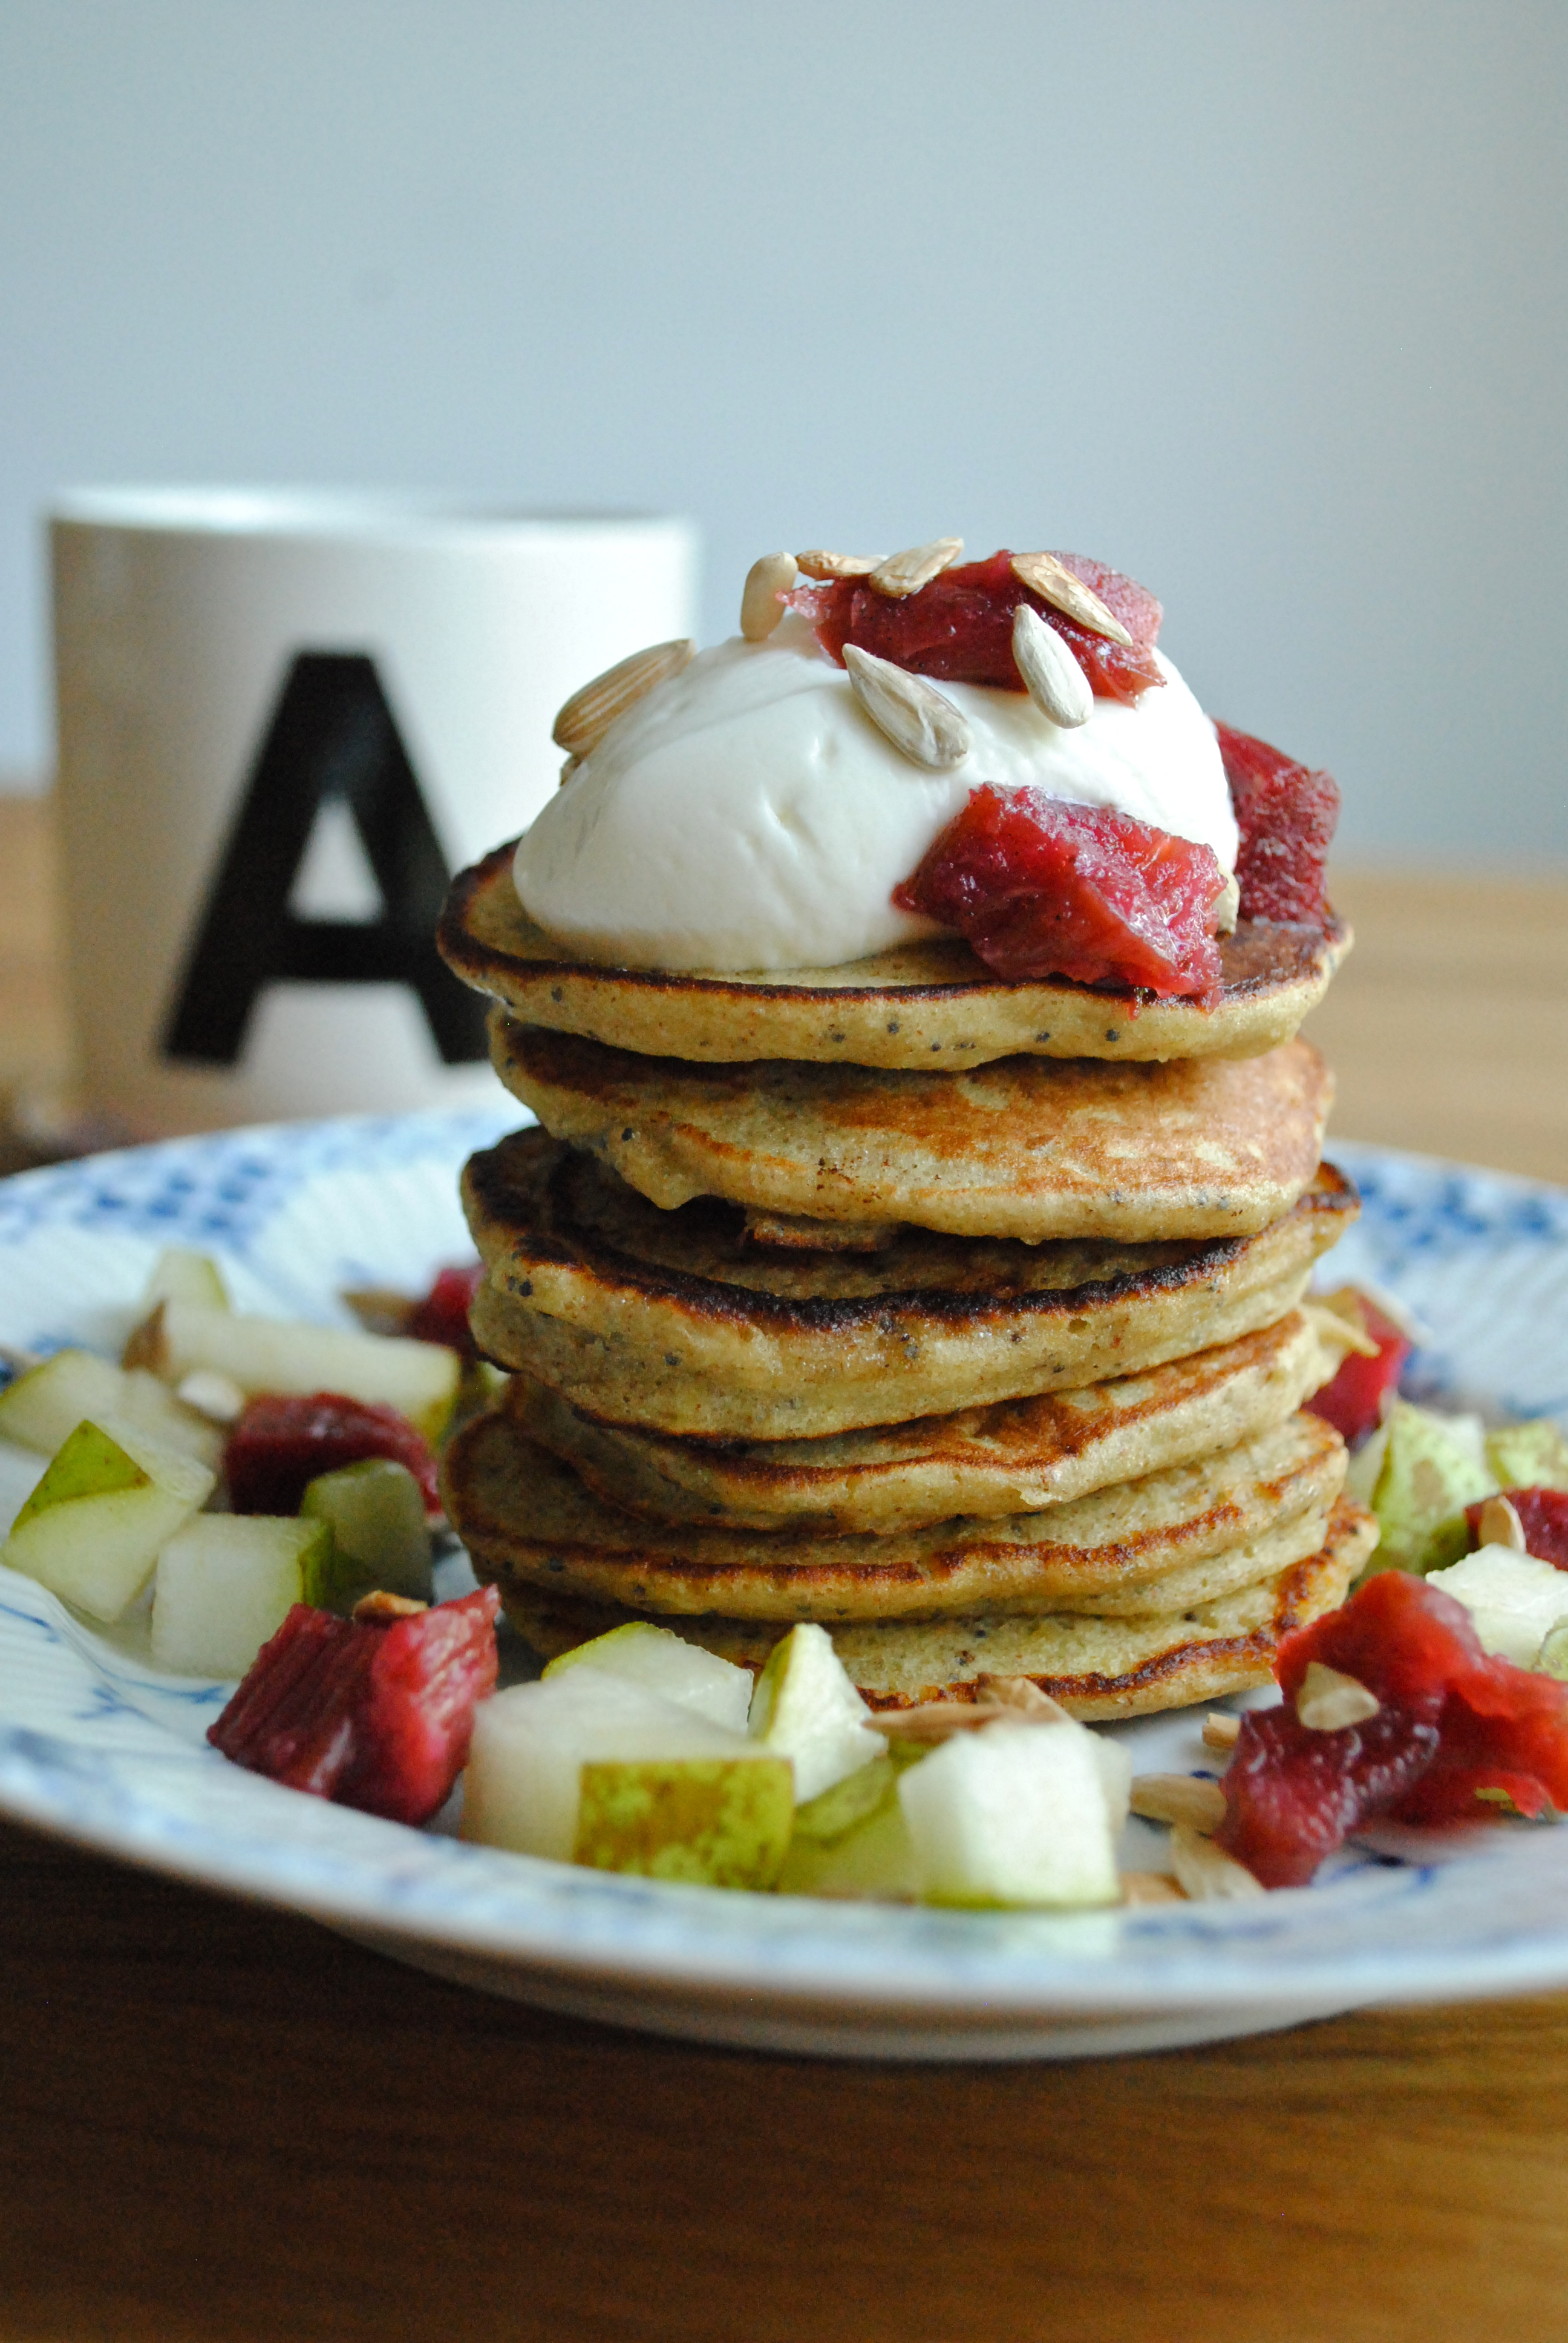 Gluten-free banana pancakes with rhubarb compote